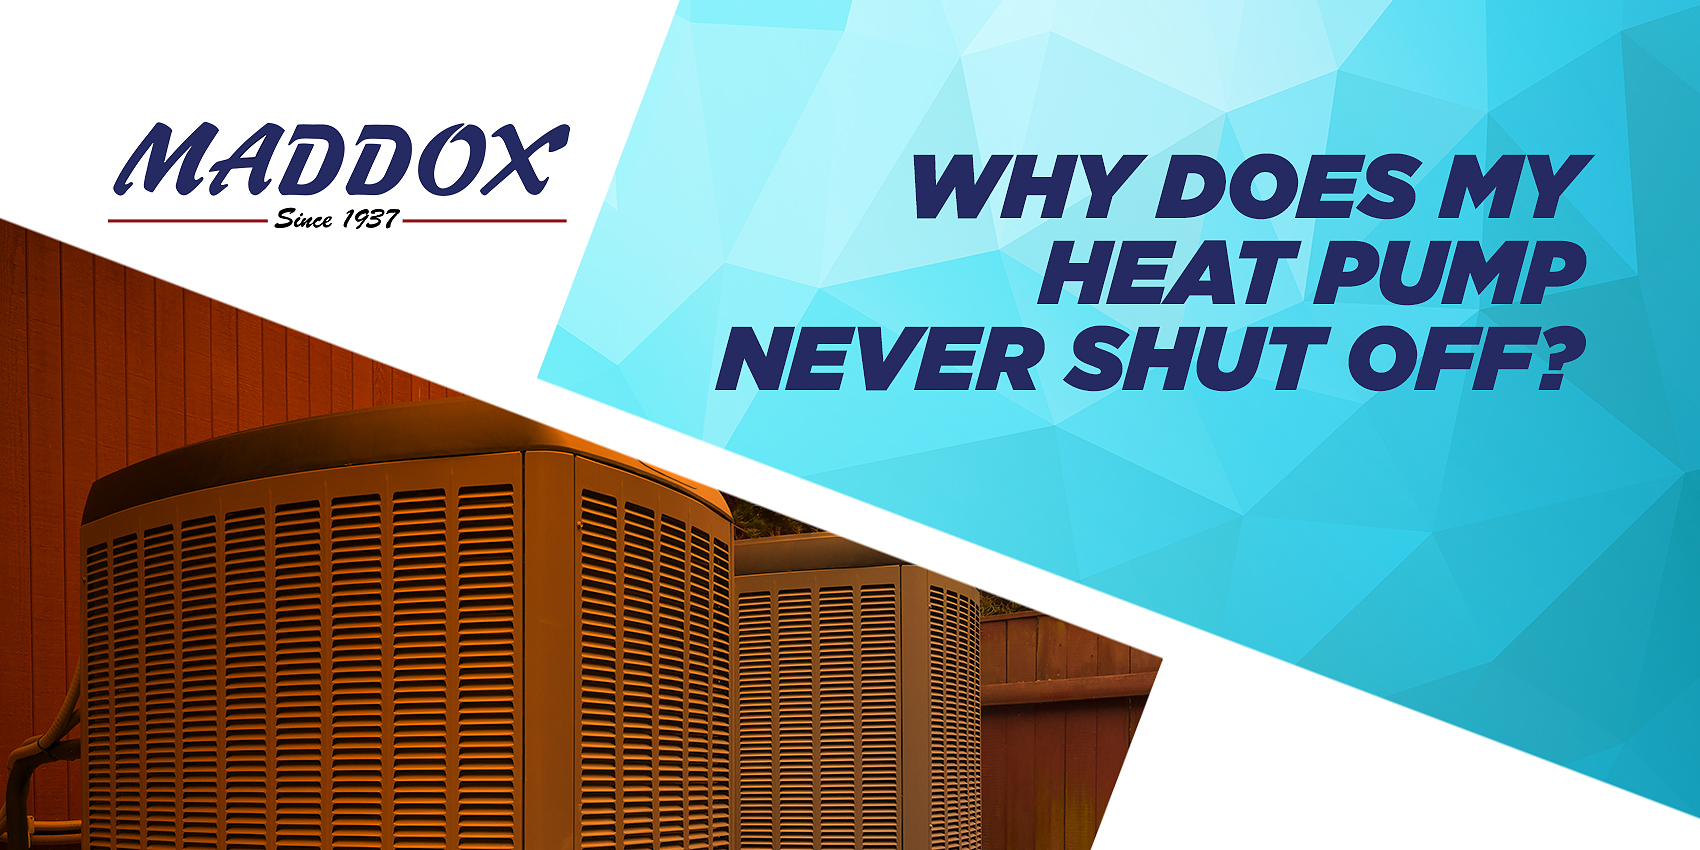 Why Does My Heat Pump Never Shut Off?